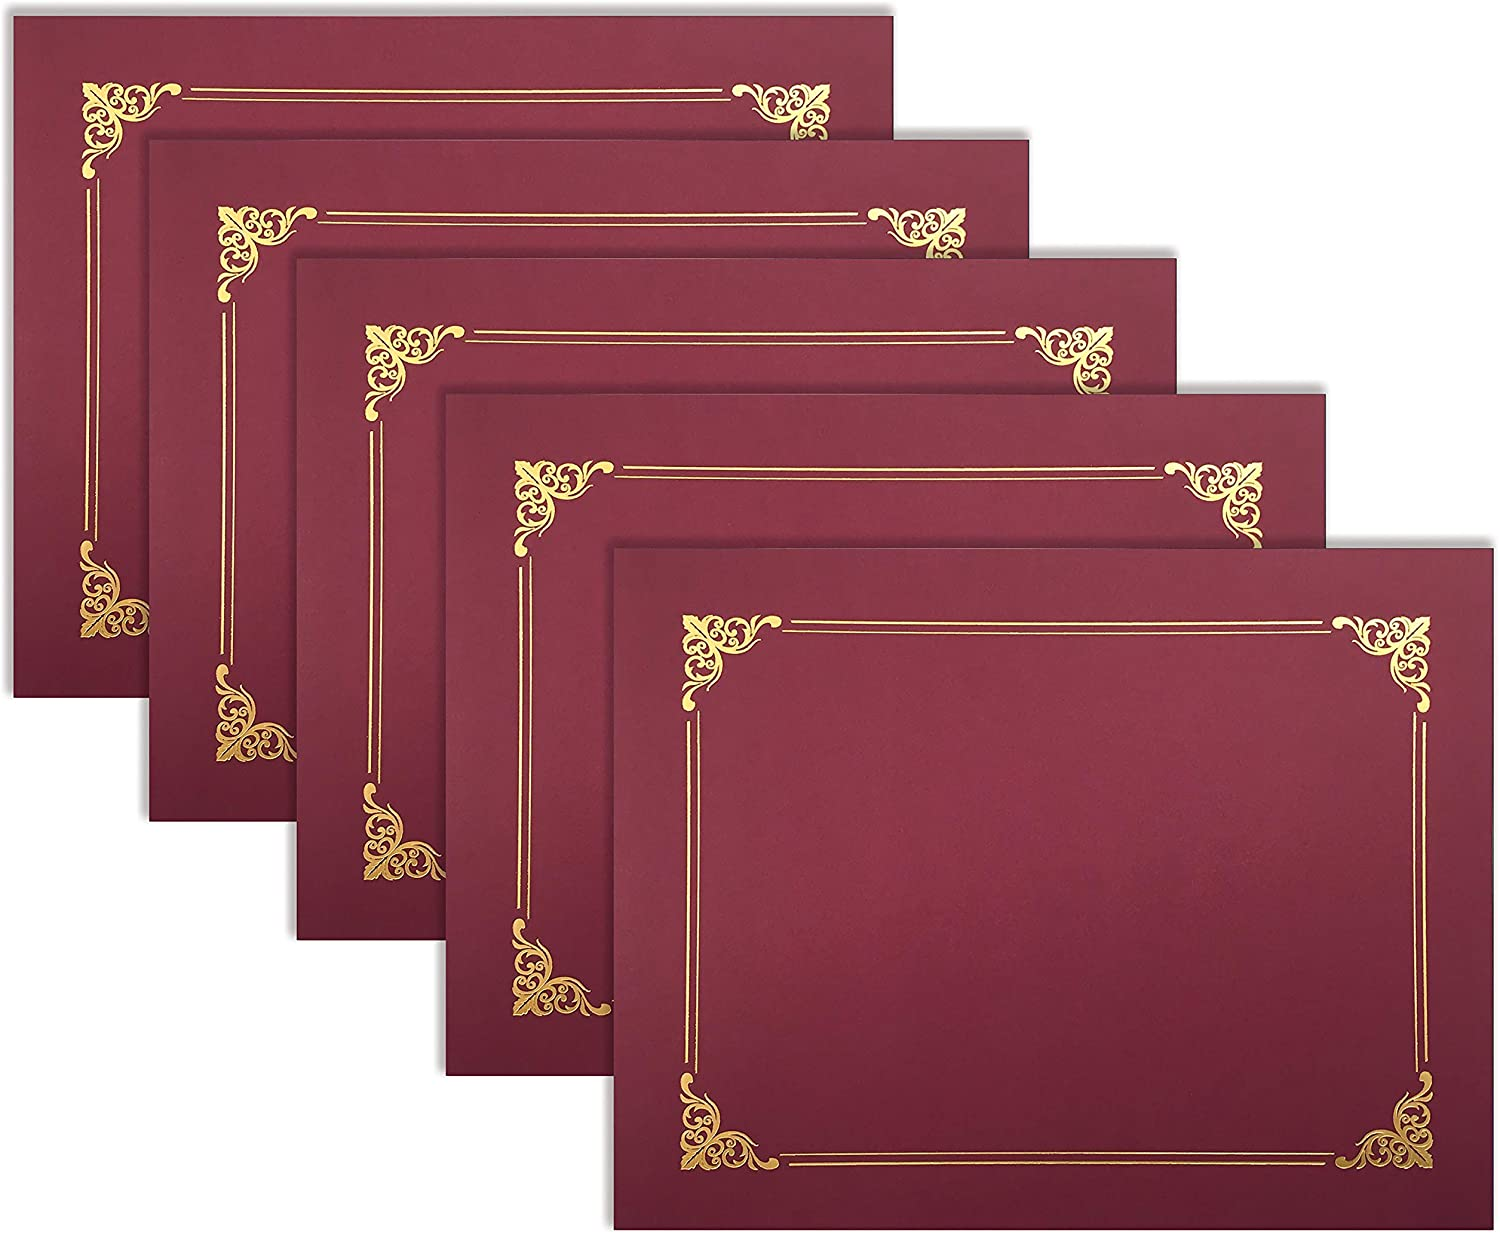 25 Pack Red Certificate Holders, Diploma Holders, Document Covers with Gold Foil Border, by Better Office Products, for Letter Size Paper, 25 Count, Crimson Red